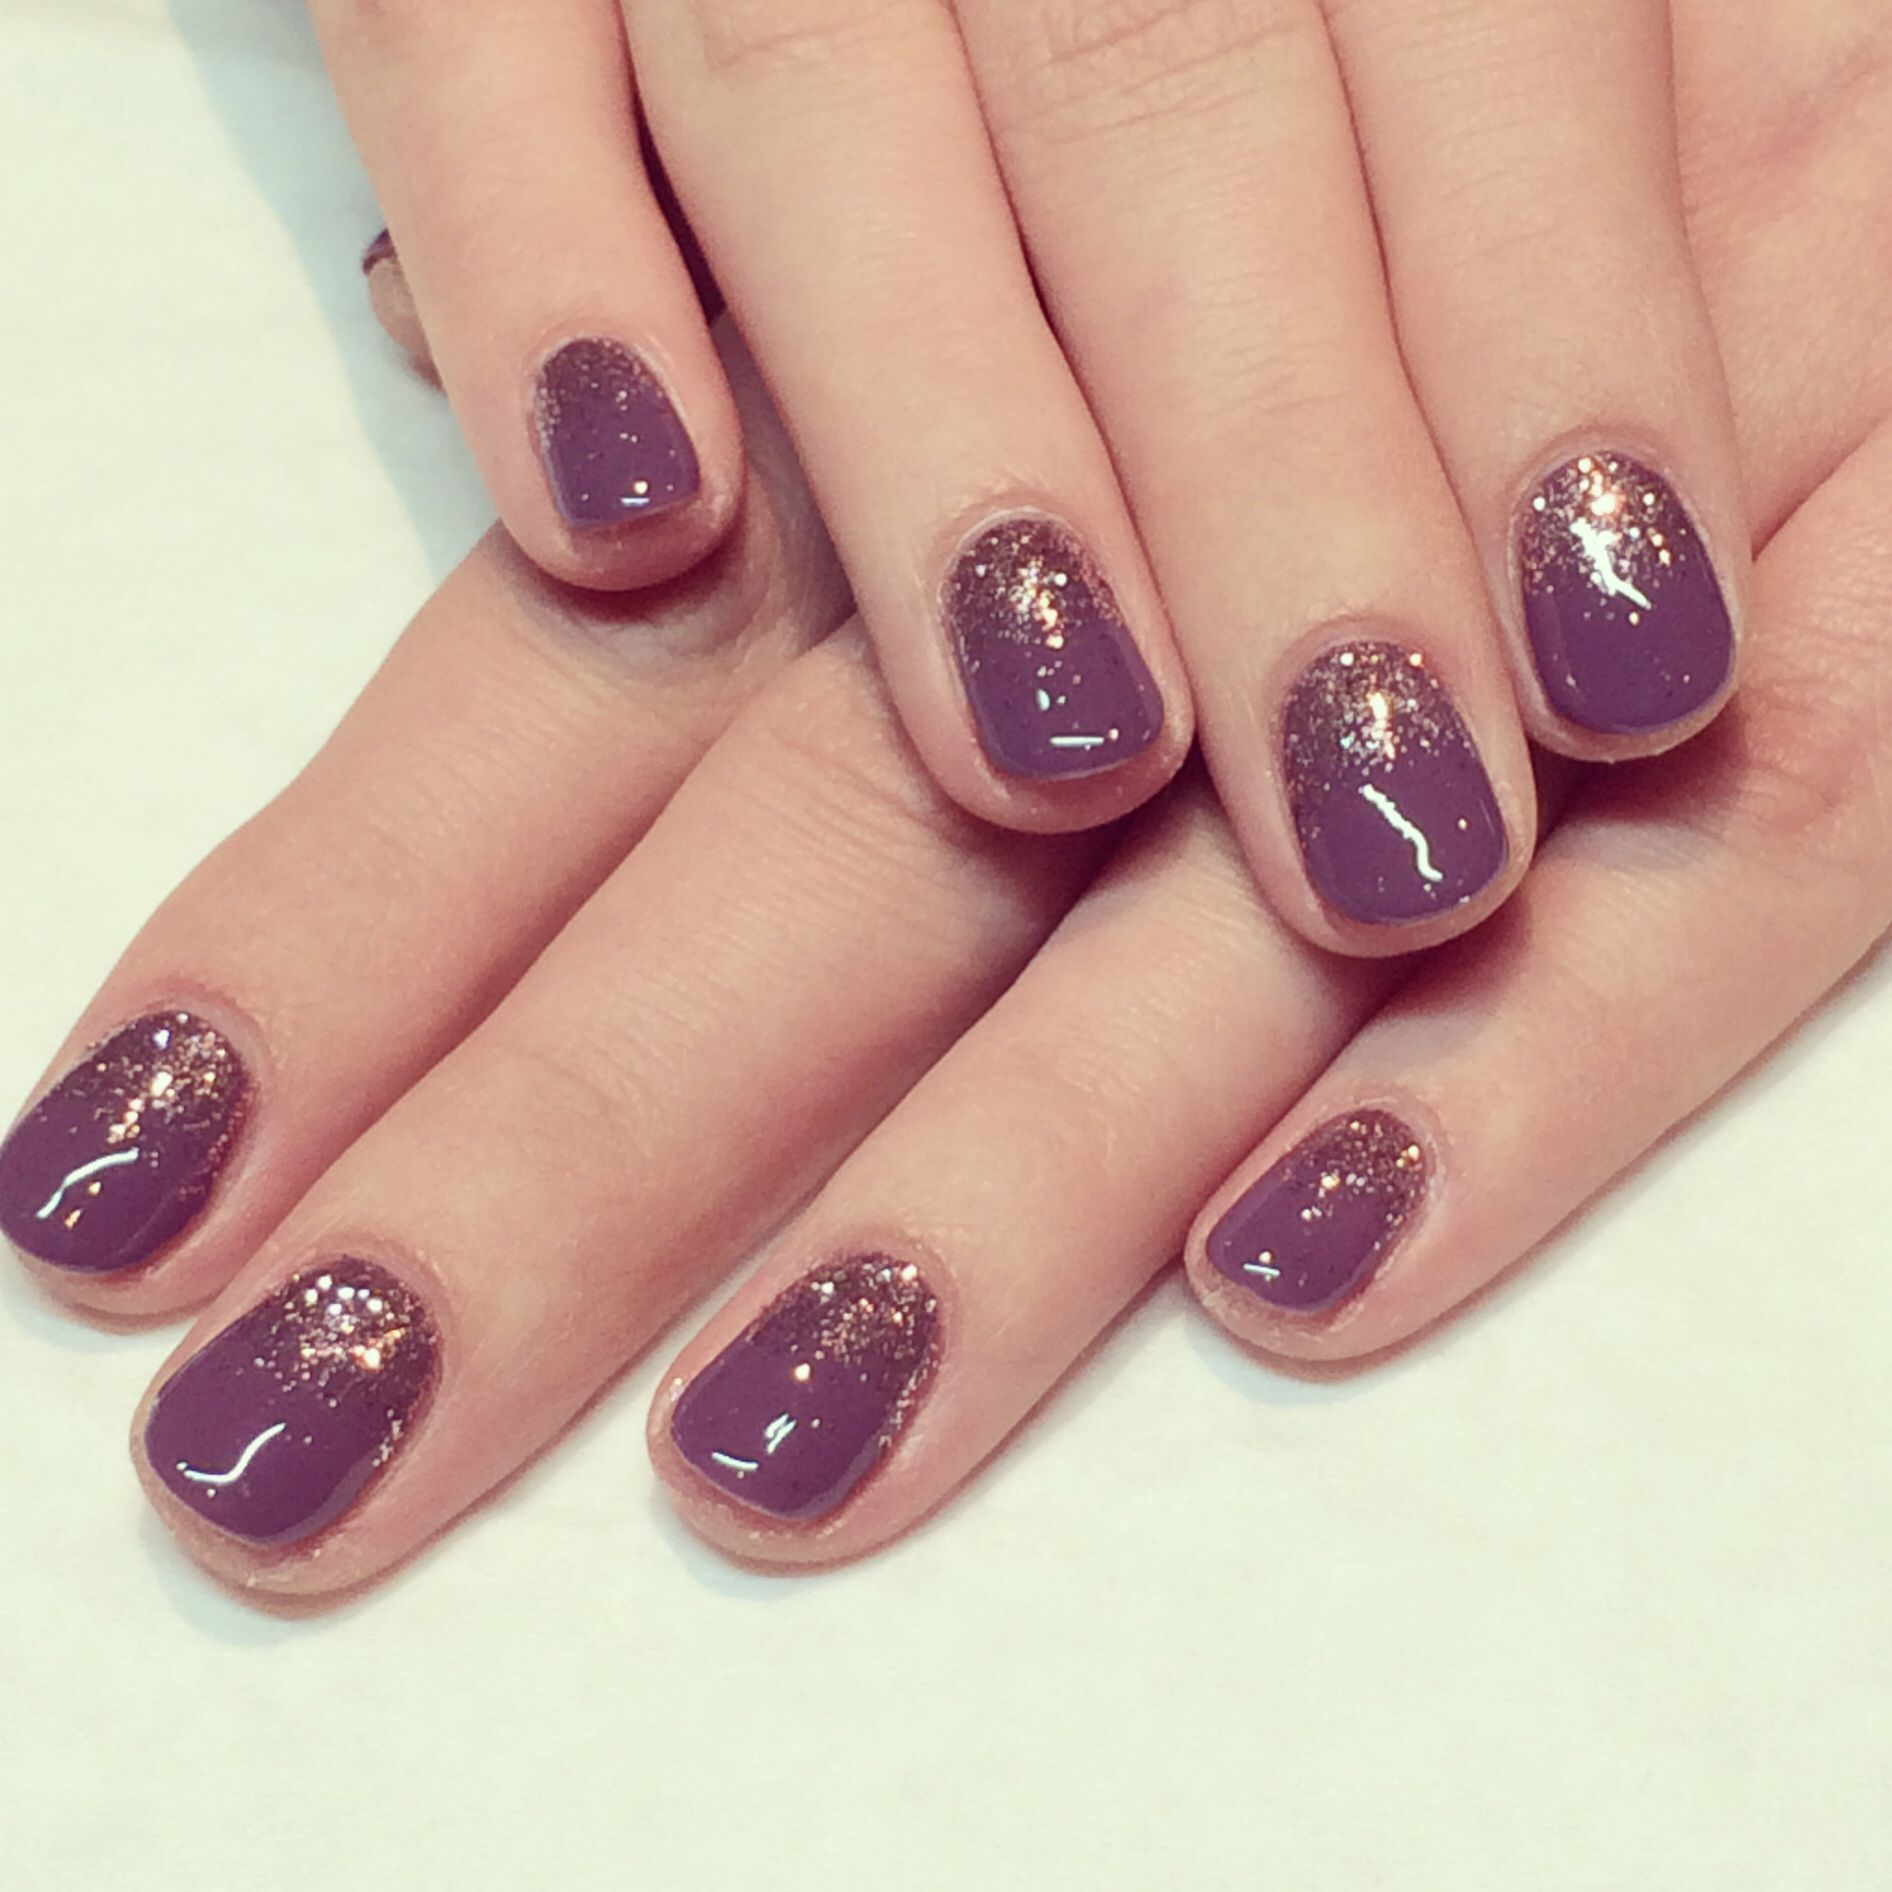 Calgel nails purple with graduated glitter x nails pinterest calgel nails purple with graduated glitter x prinsesfo Gallery